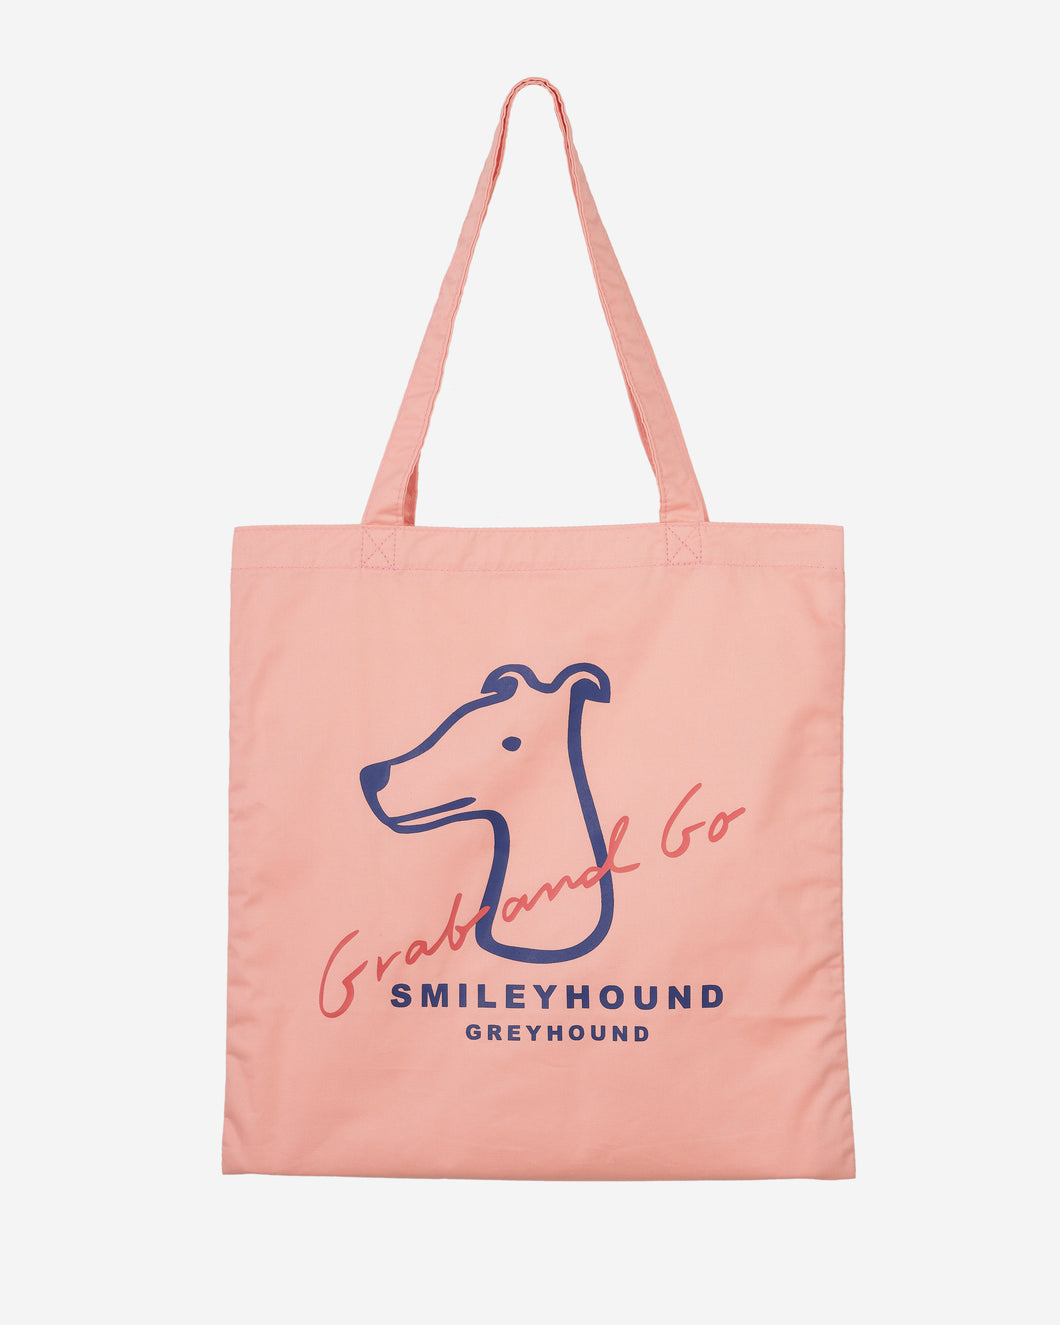 ONLINE EXCLUSIVE COTTON TOTE BAG WITH SCREENED LOGO